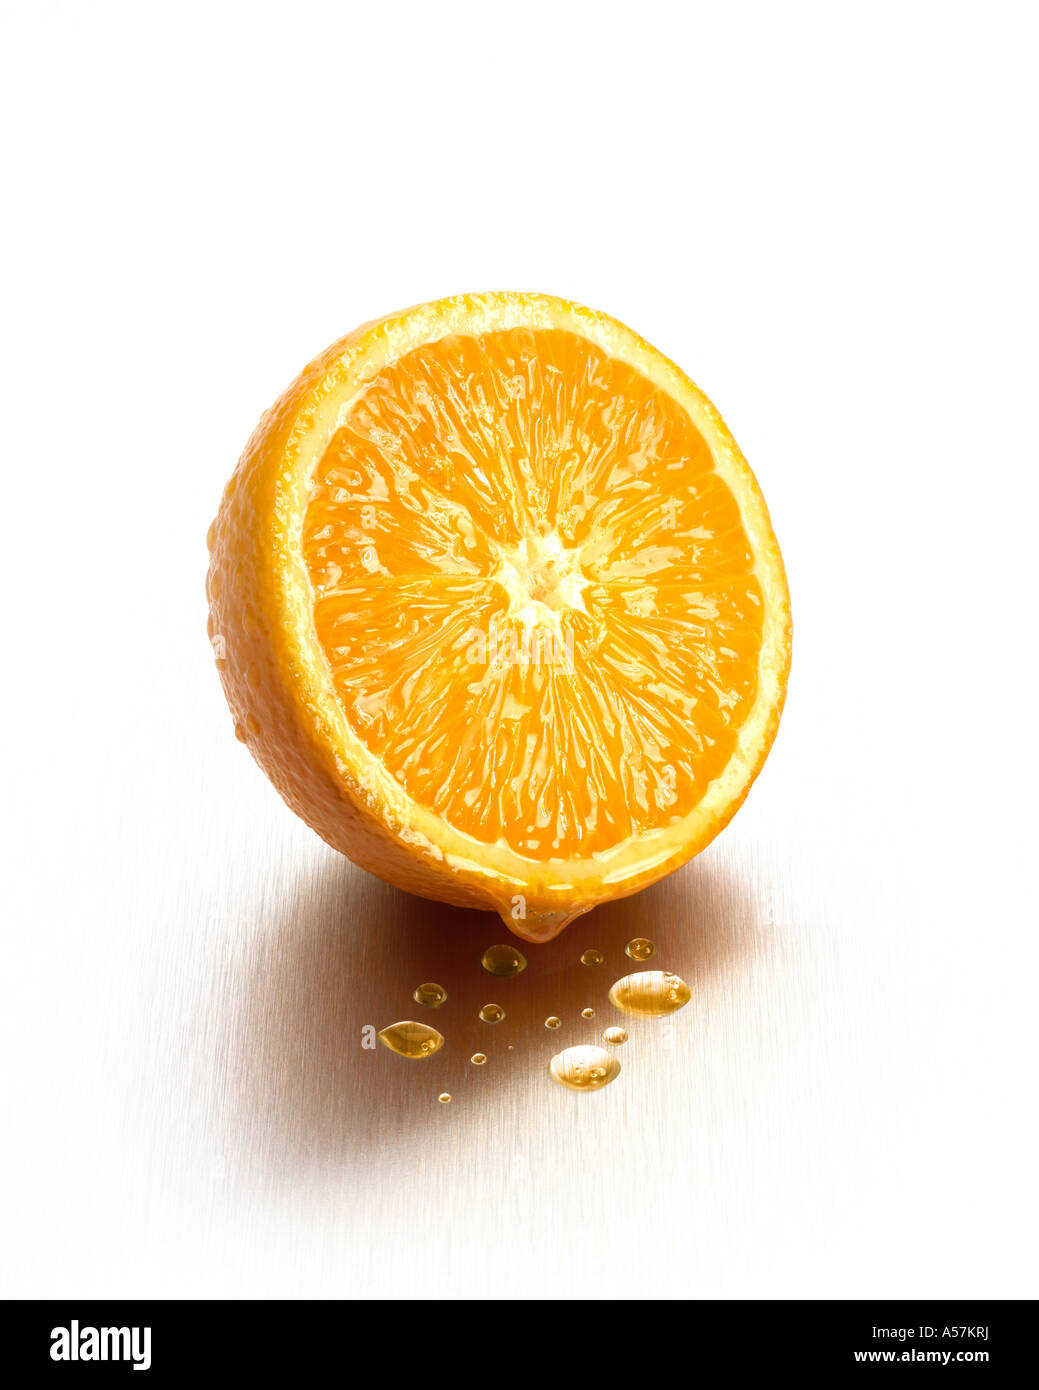 A juicy fresh Orange cut in half Stock Photo